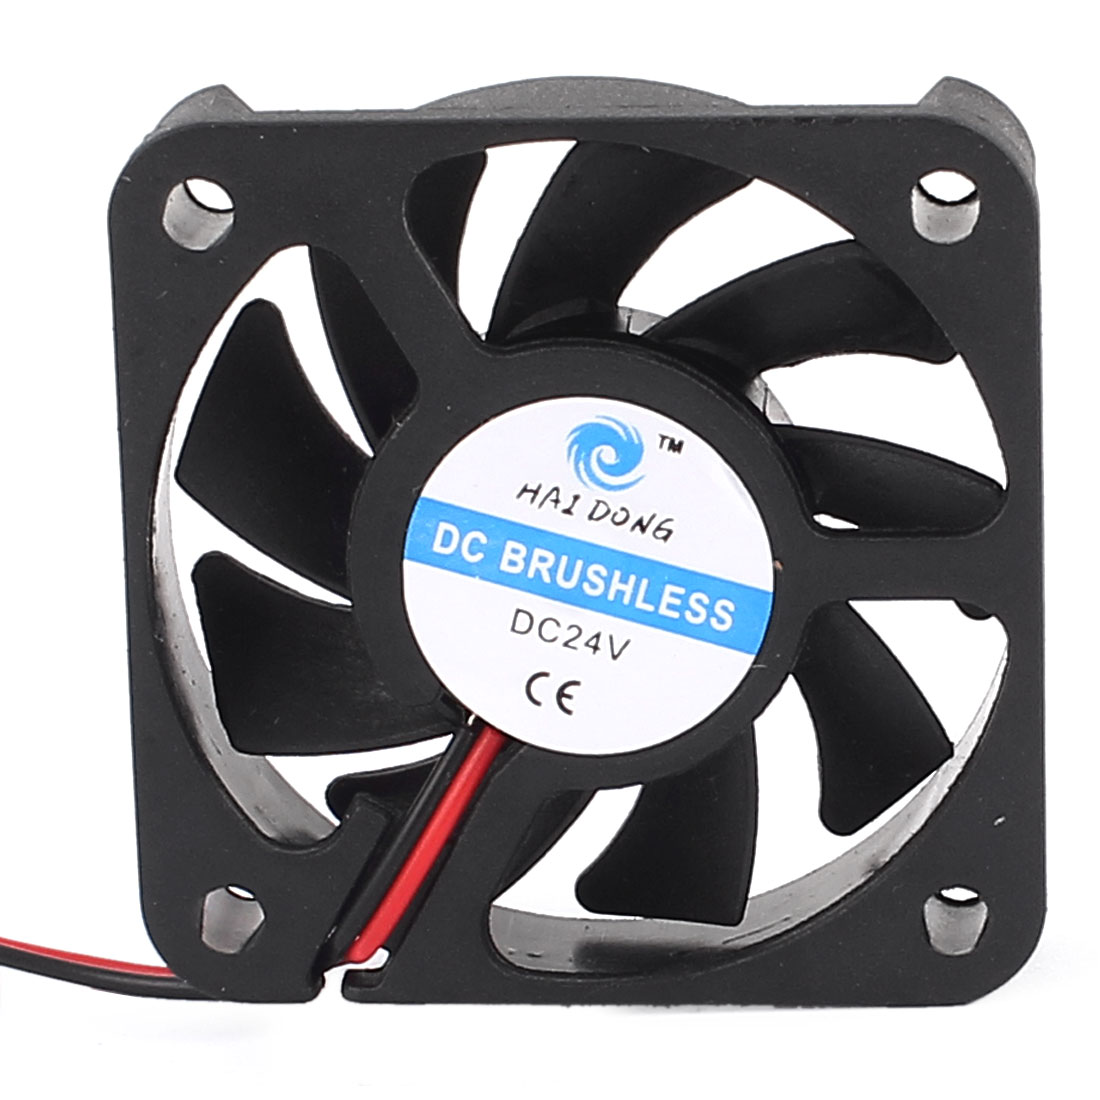 DC 24V Brushless Mini Cooling Fan 50mm x 50mm for Computer